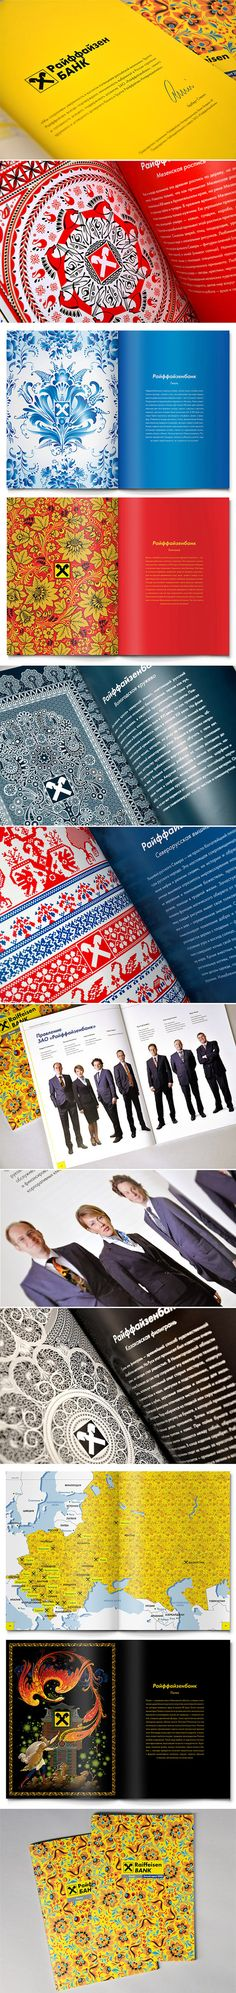 "Raiffeisen Bank Annual report (2008) ""Theme of ancient Russian handicraft was used in visual design of the report. Traditional motifs of Palekh, Khokhloma, Gzhel', Mezen painting, Vologda lace, North-Russian embroidery and Kazak's filigree decorated the half title with logo of the bank."" Andrew Gorkovenko : Art Direction, Design, Graphic Design 